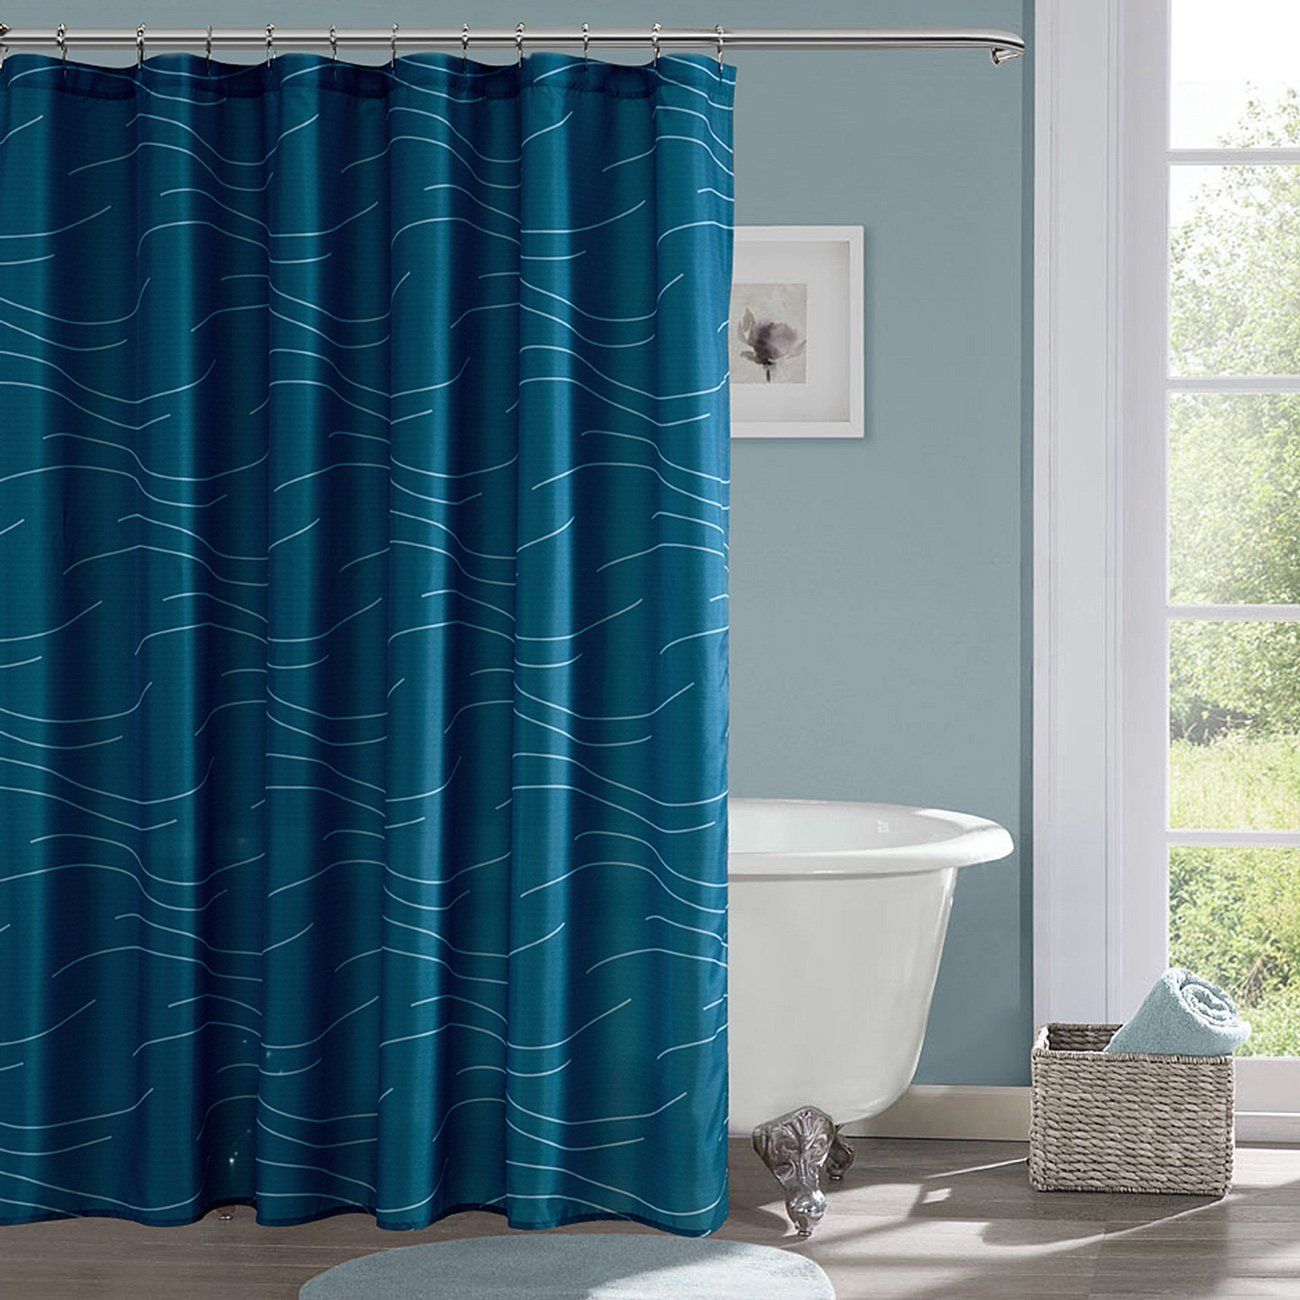 Amazon.com: KINDOBEST Light Blue Shower Curtains for Bathroom ...